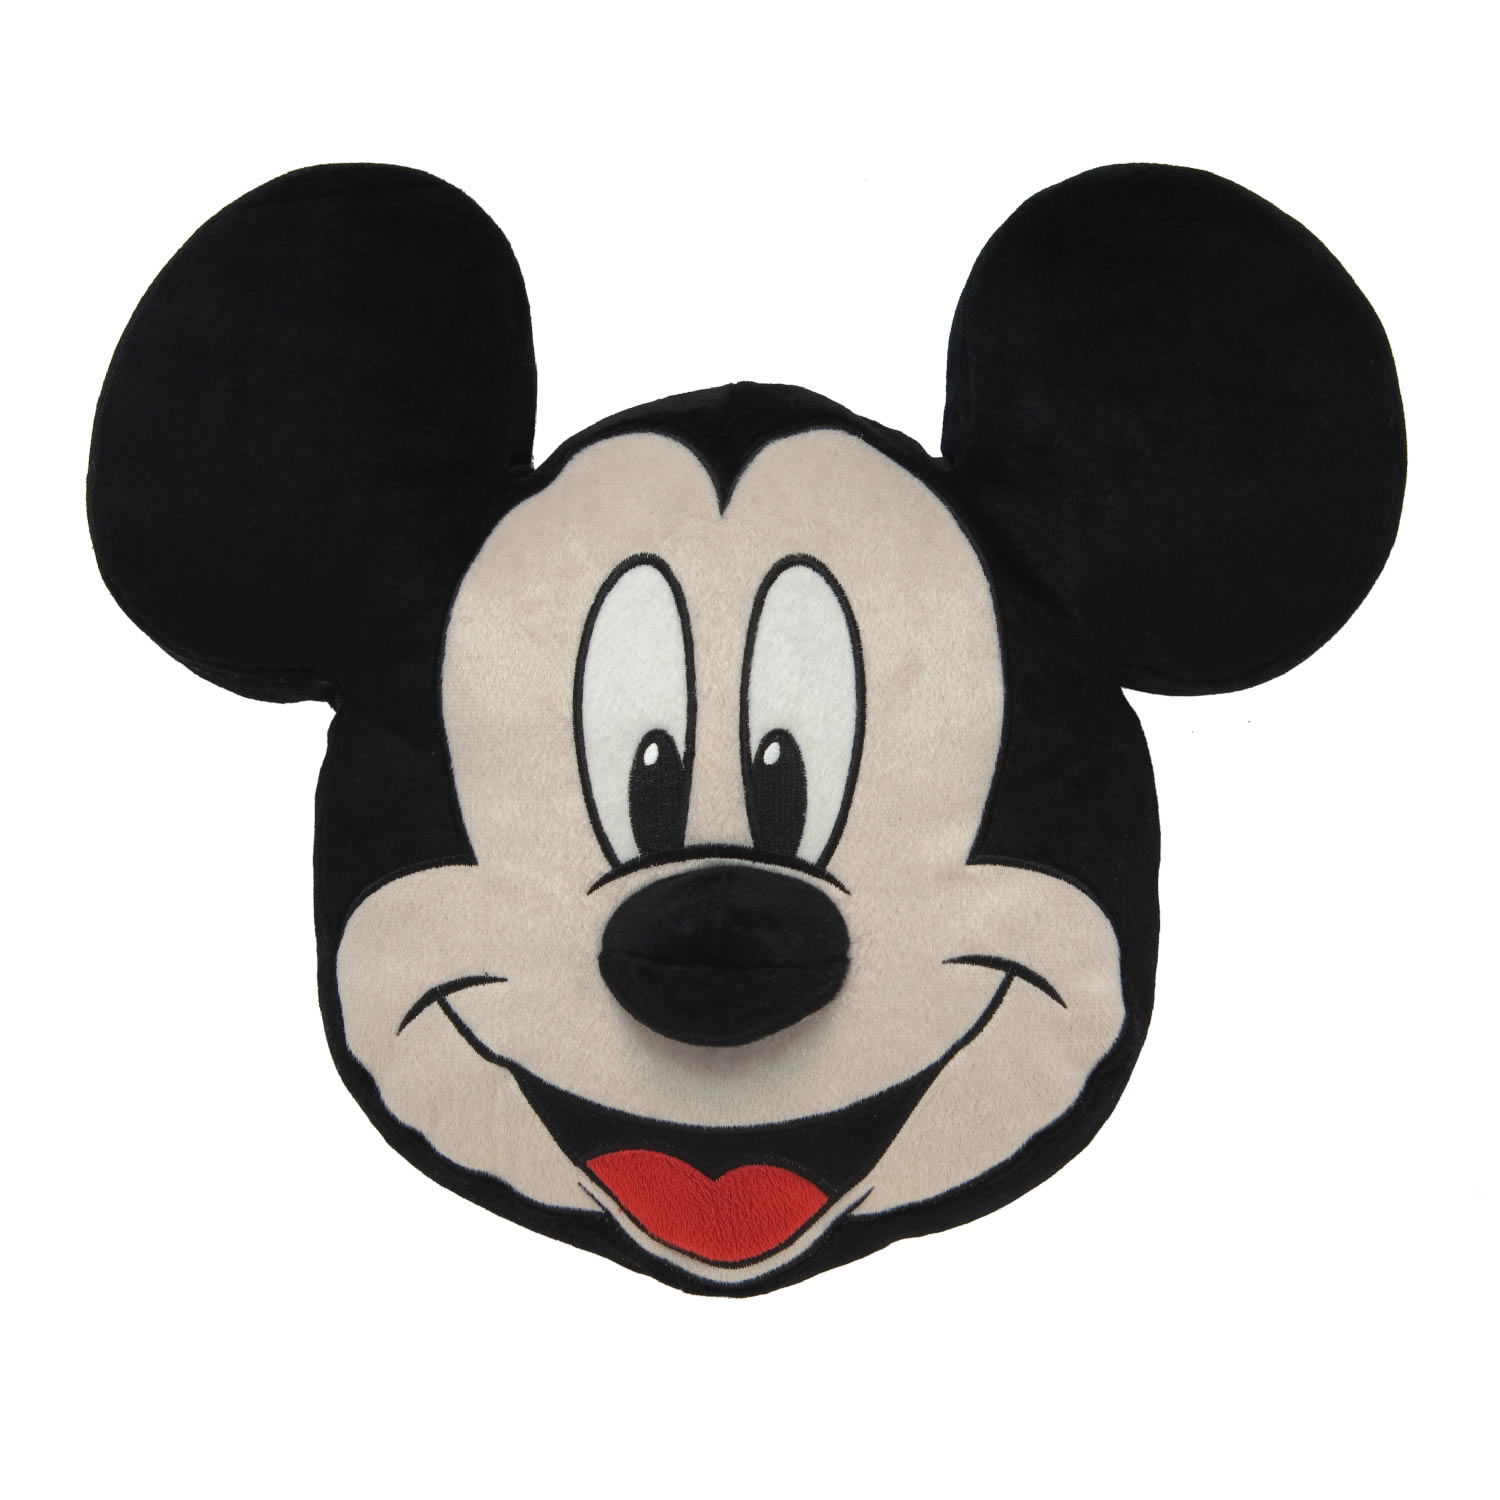 Mickey Mouse Png Free Icon image #12186